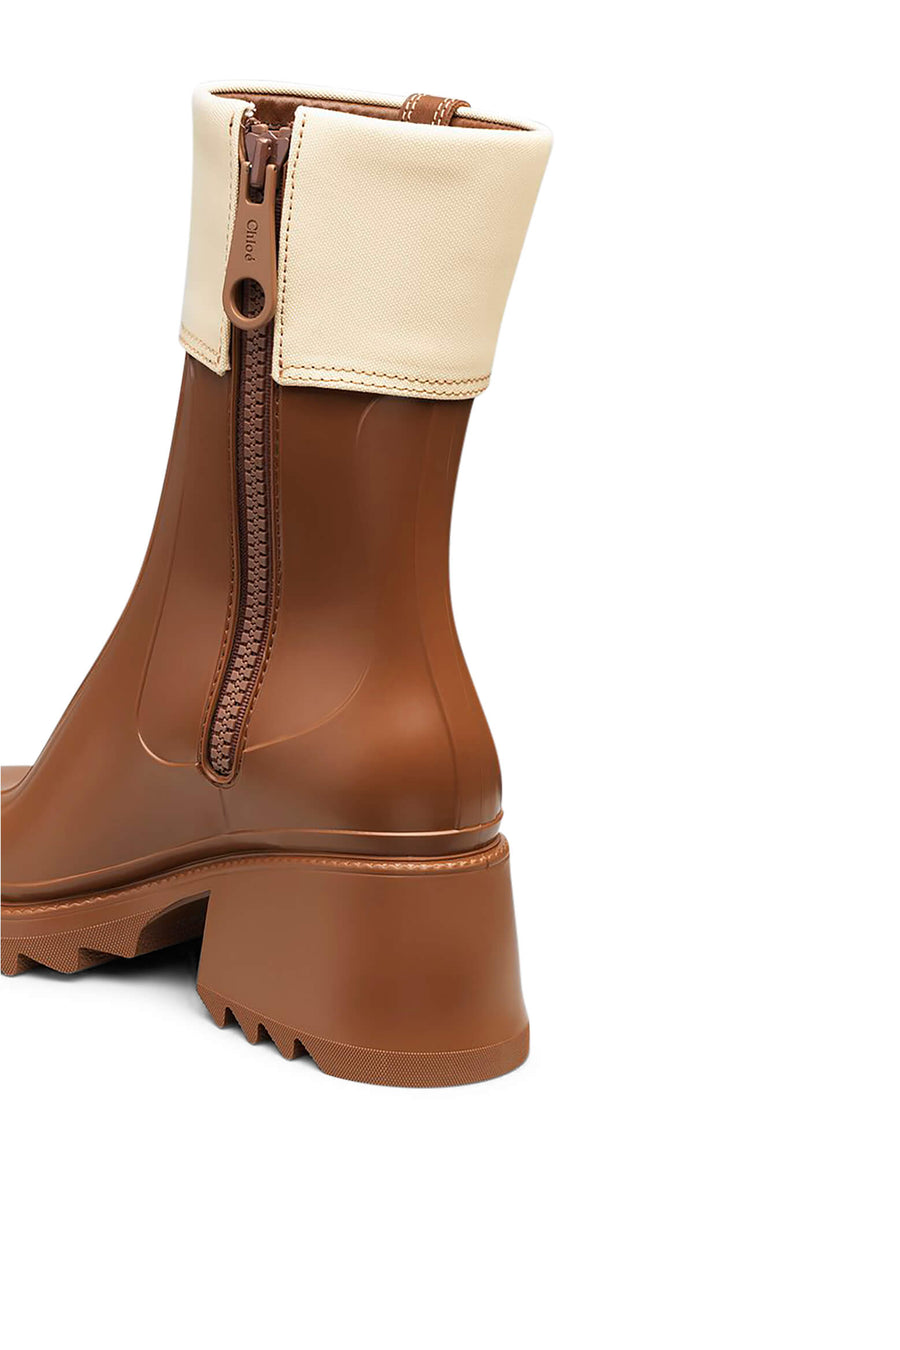 Chloe Betty Ankle Gumboot in Brown from The New Trend